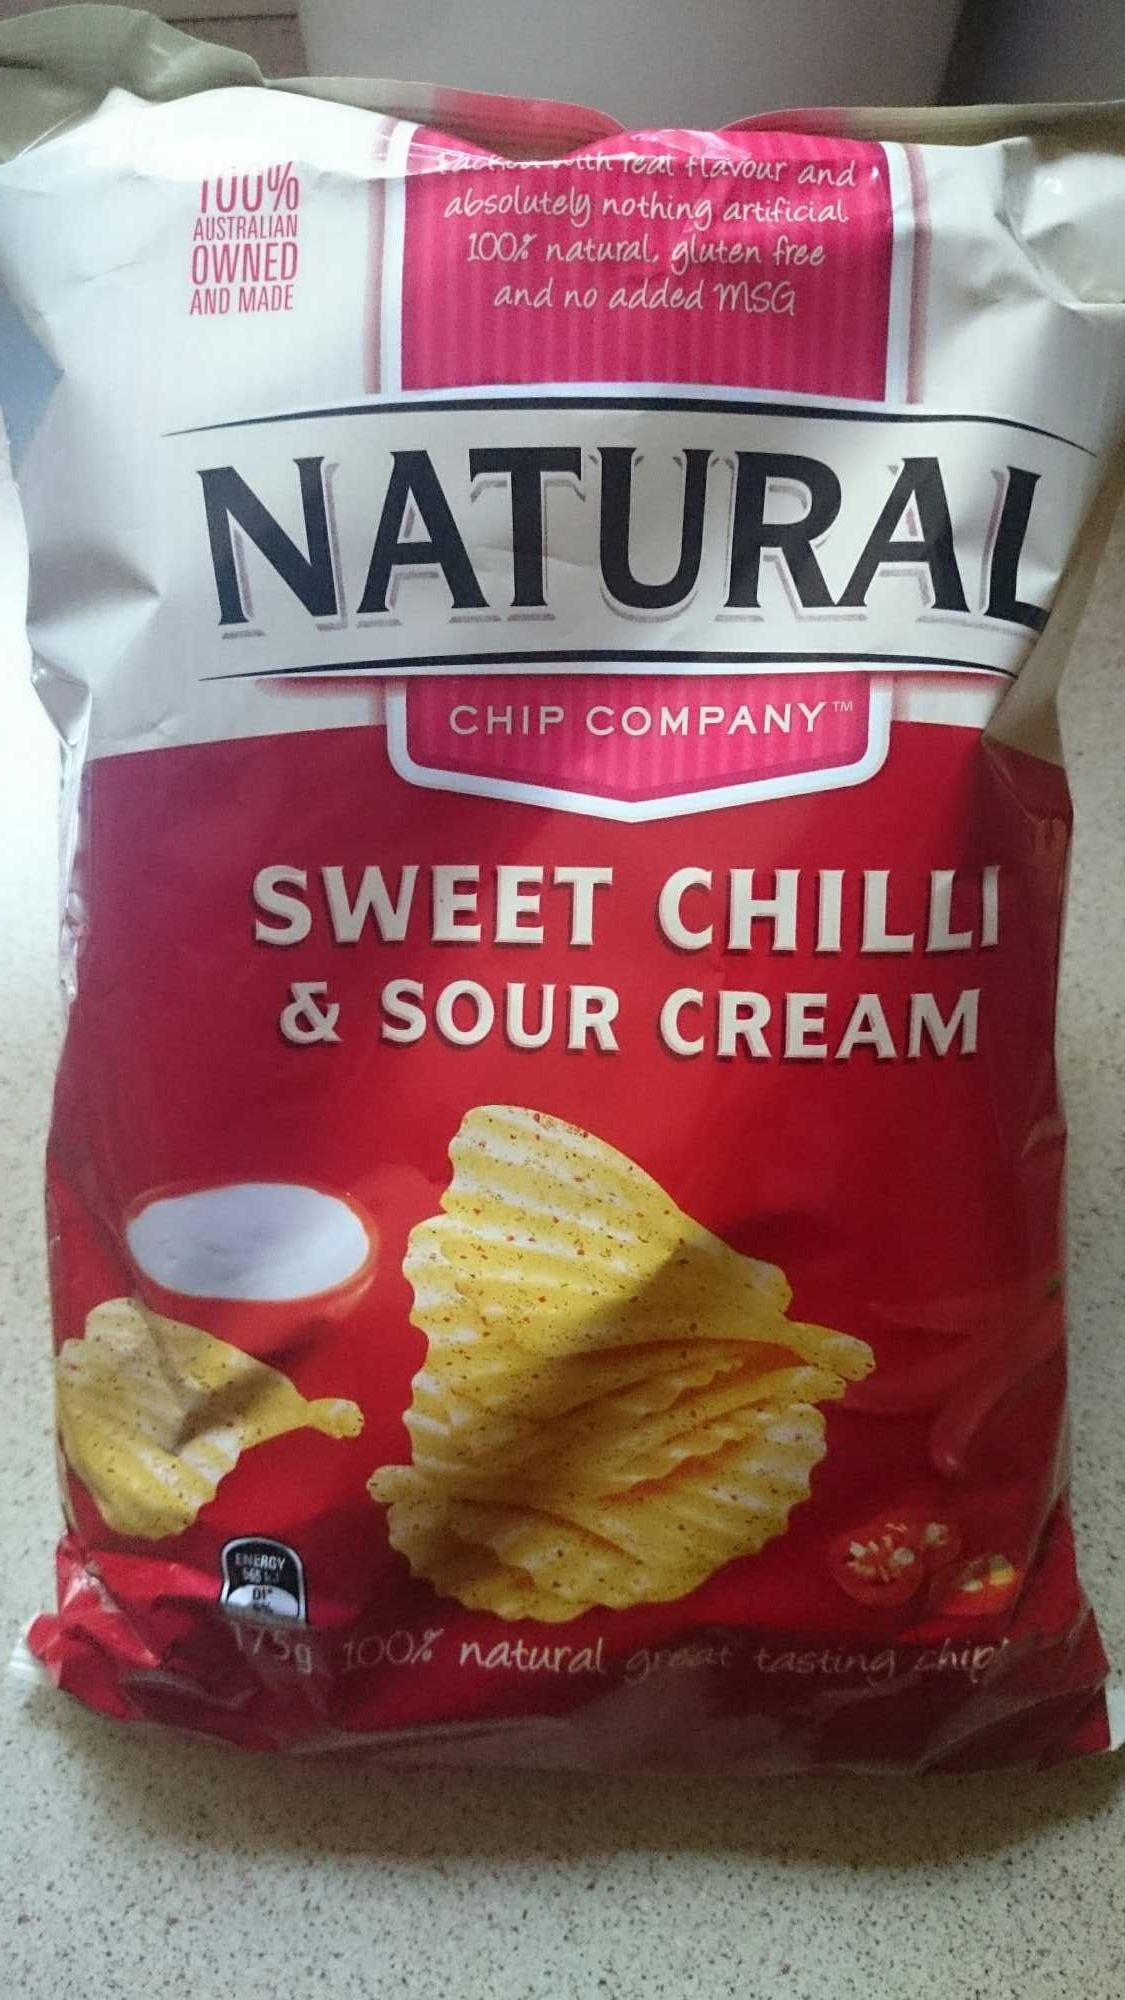 Natural Chip Company Sweet Chilli and Sour Cream Chips - Product - en